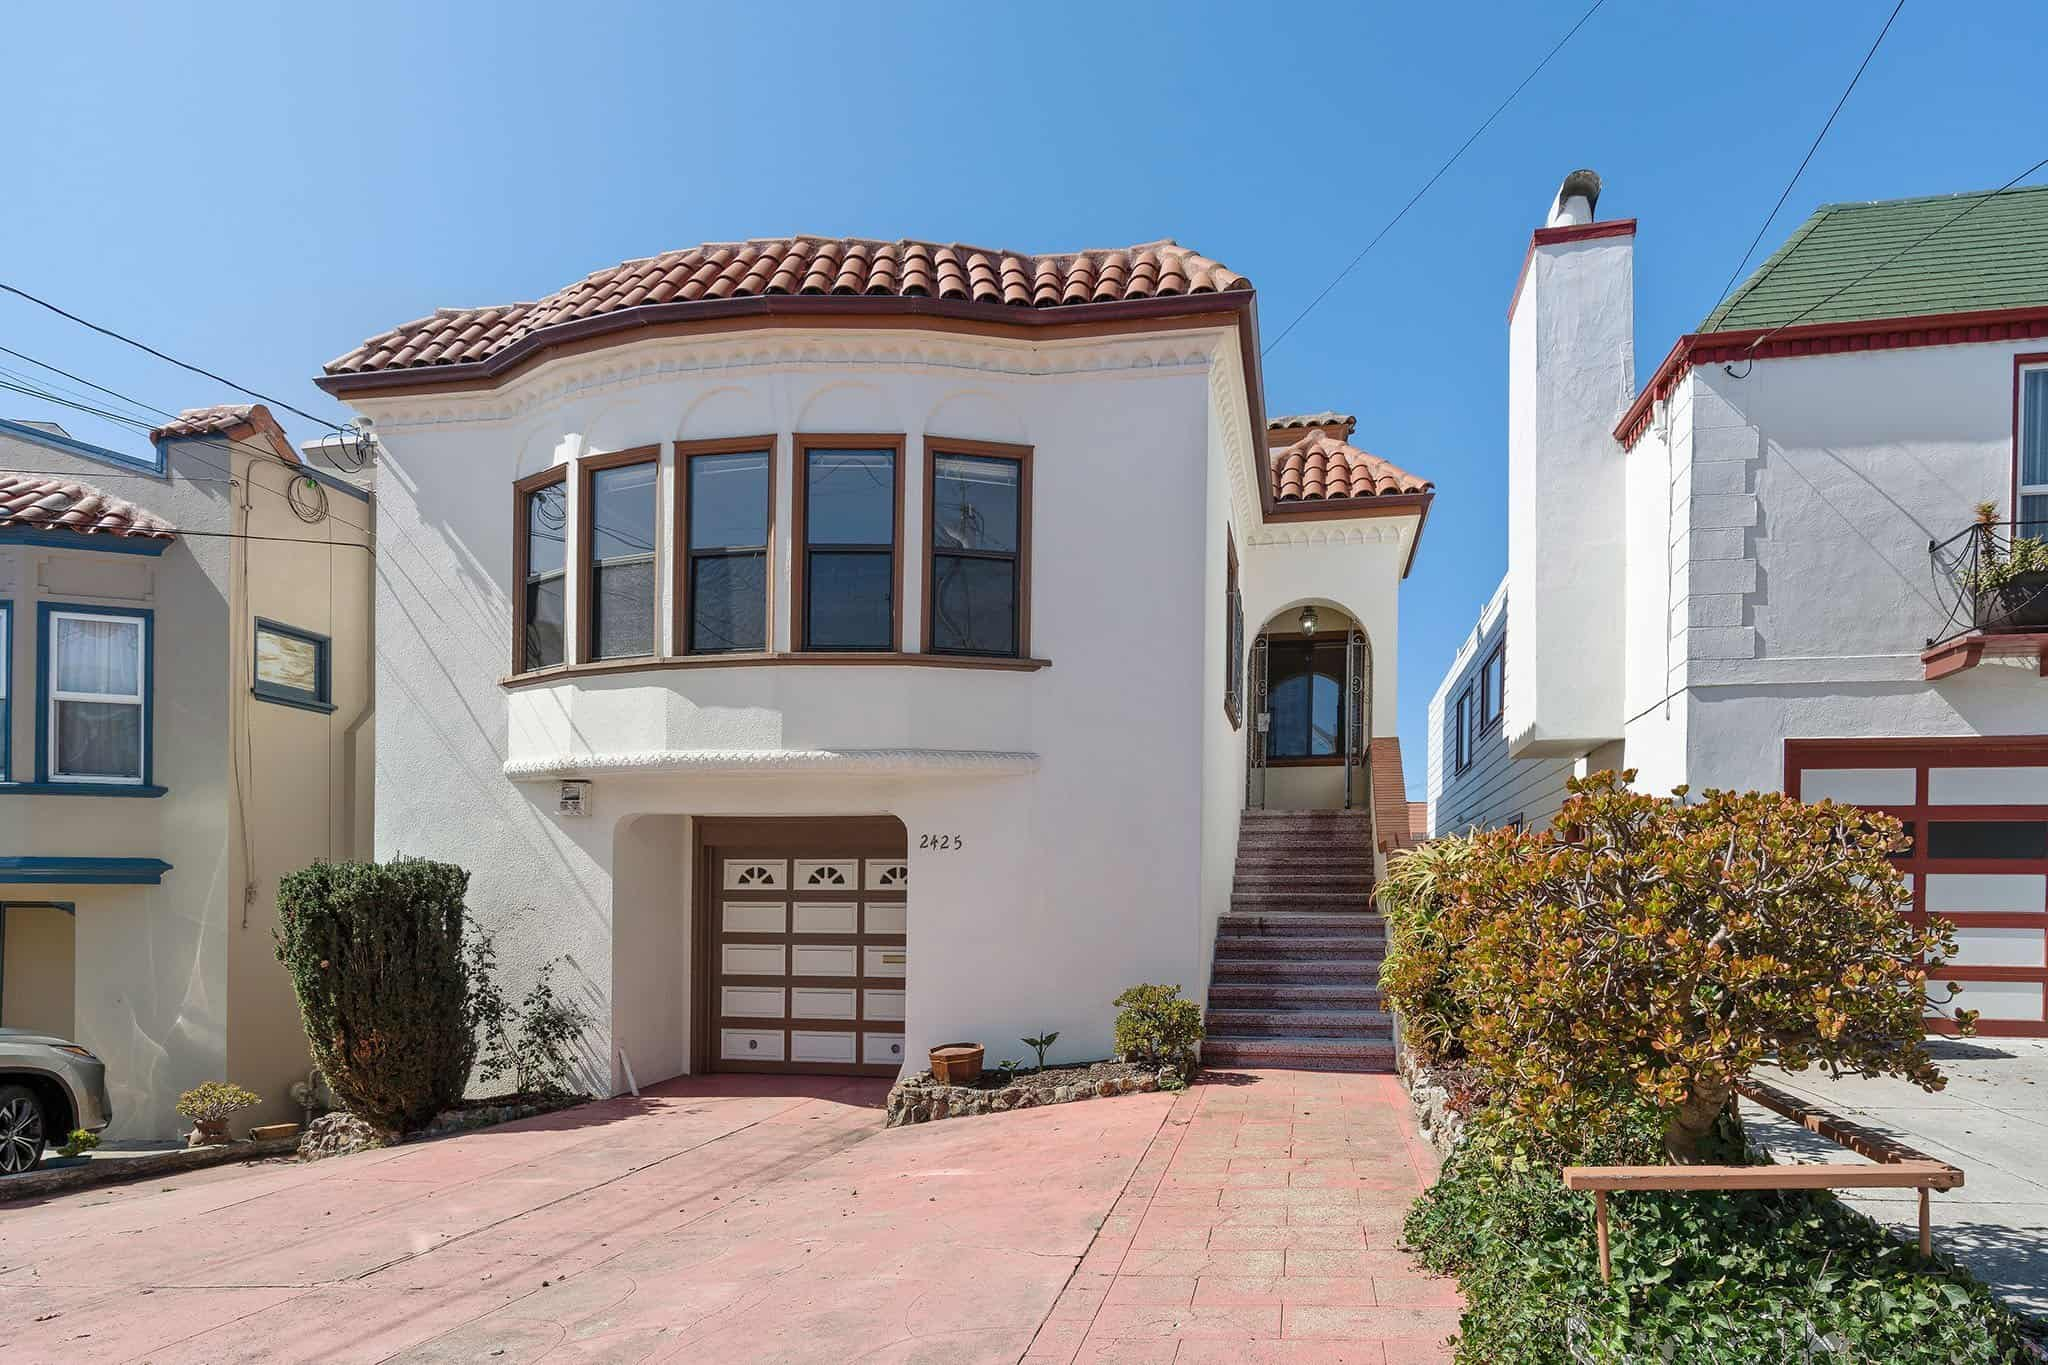 San Francisco SFH – 4BR / 2.5BA / In-Law Unit – $2.250M [OFF-MARKET]